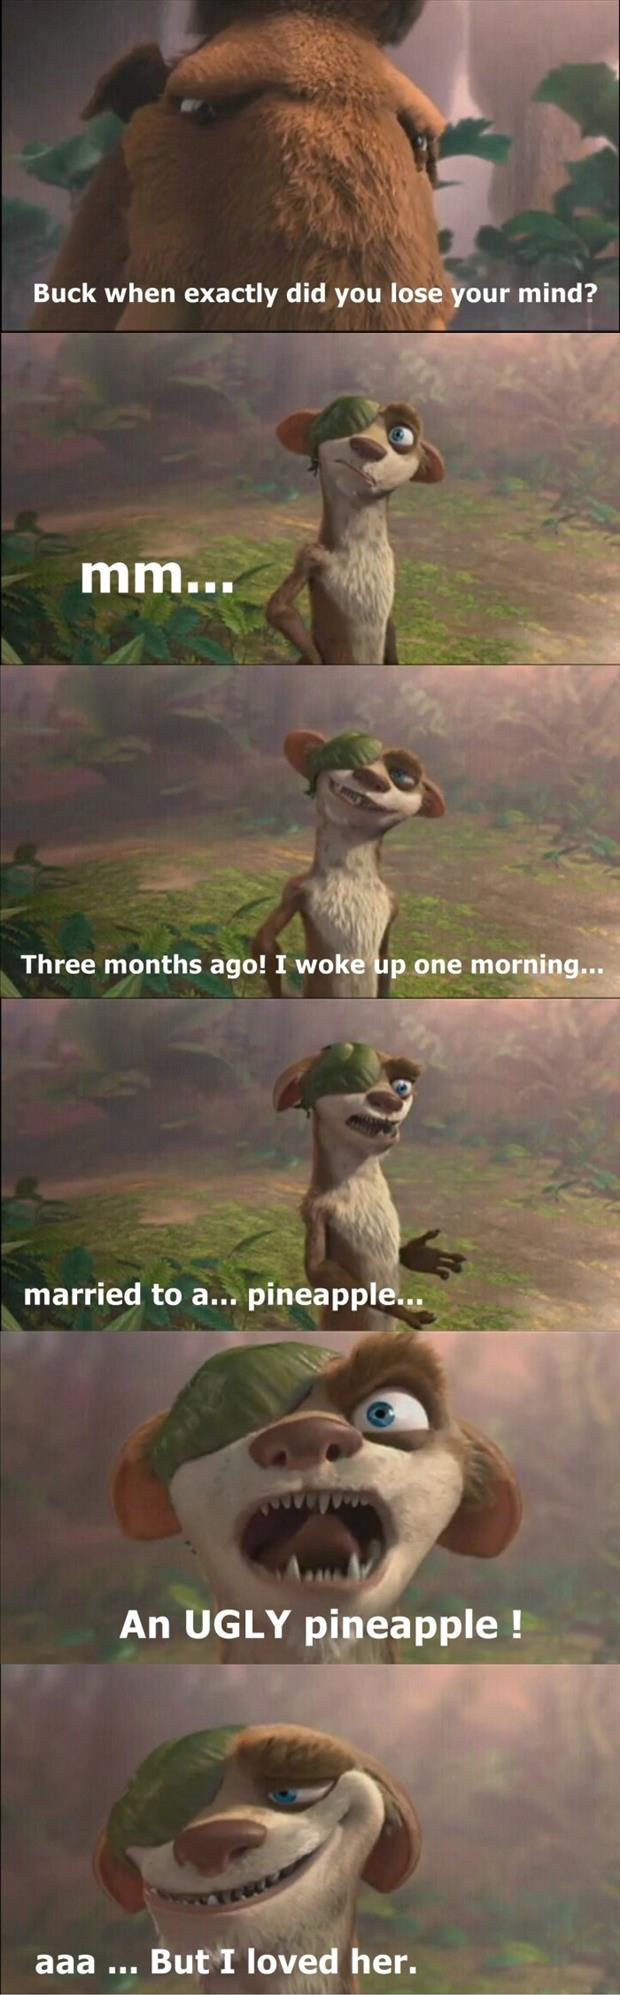 ice age buck funny quotes